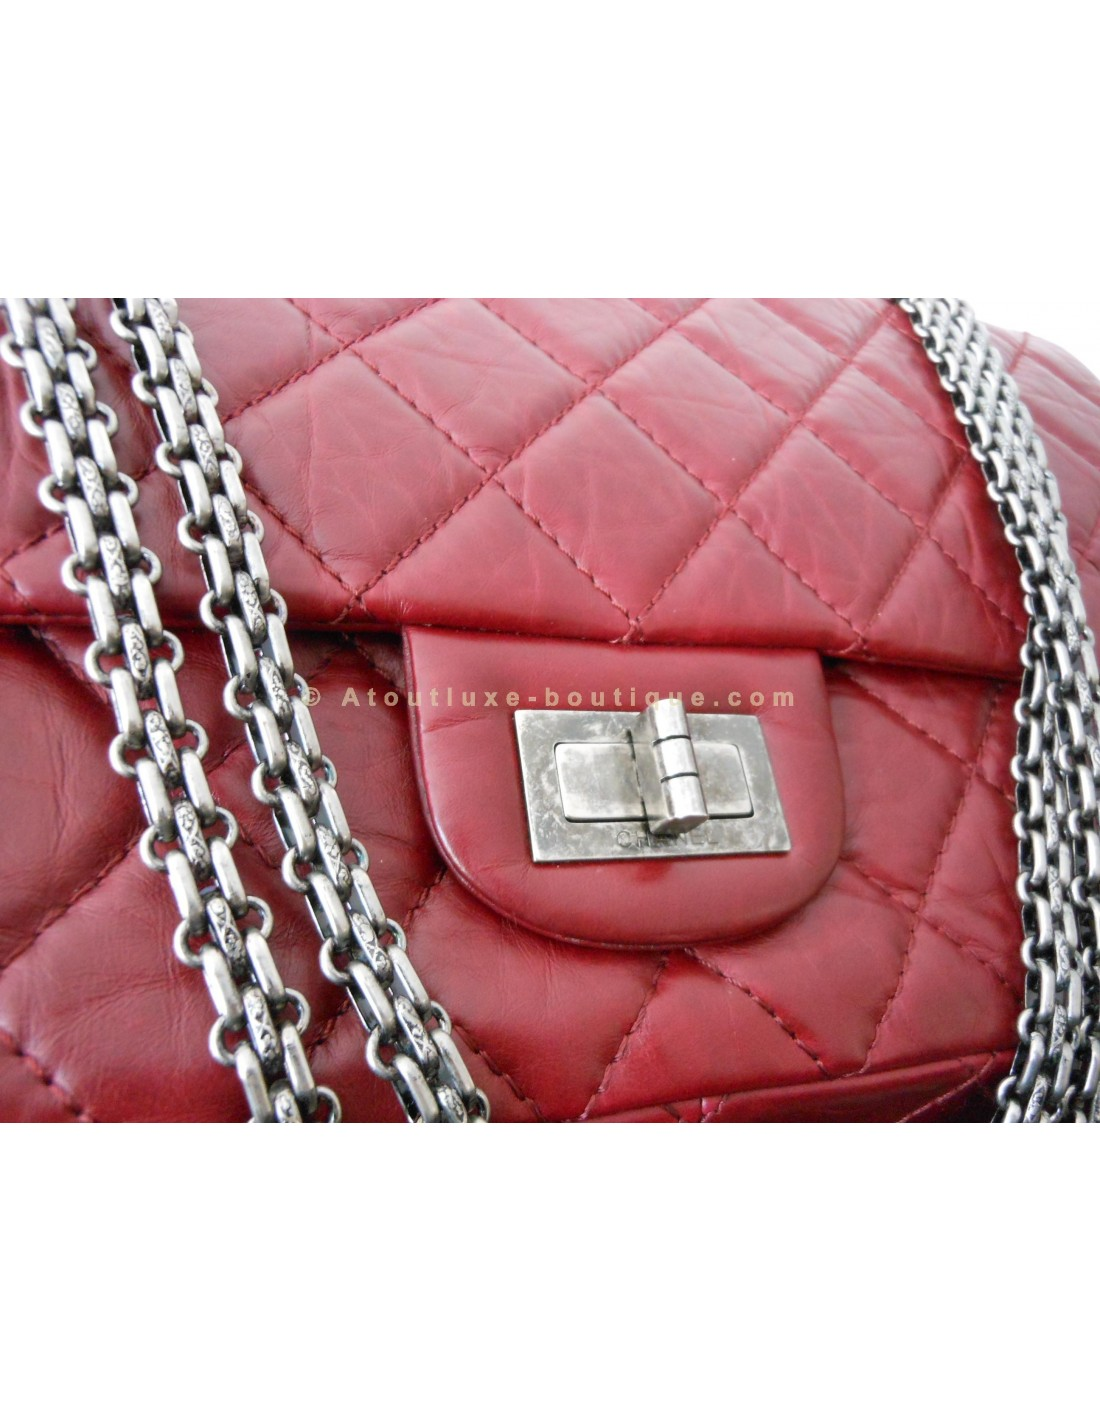 Sac chanel jumbo rouge bordeaux atoutluxe boutique for Sac chanel interieur